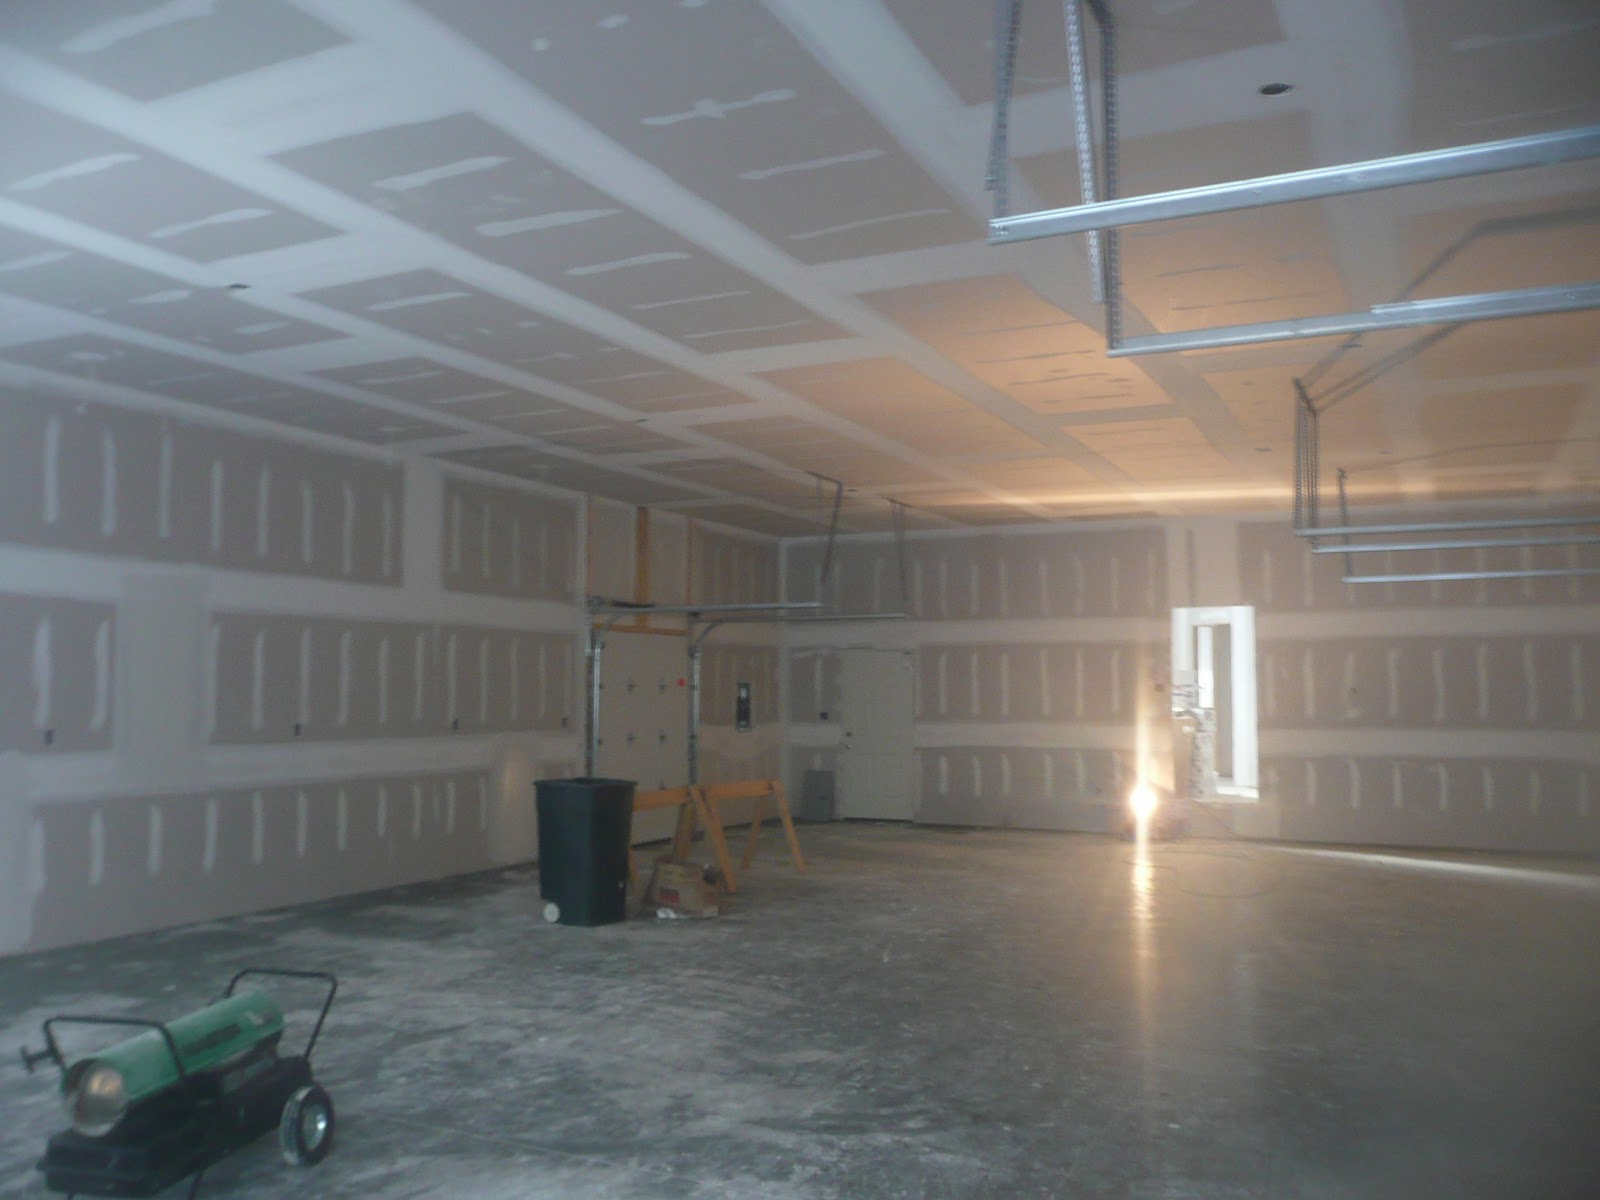 Drywall Taping And Mudding : Steve and shelly s new house drywall is all hung now